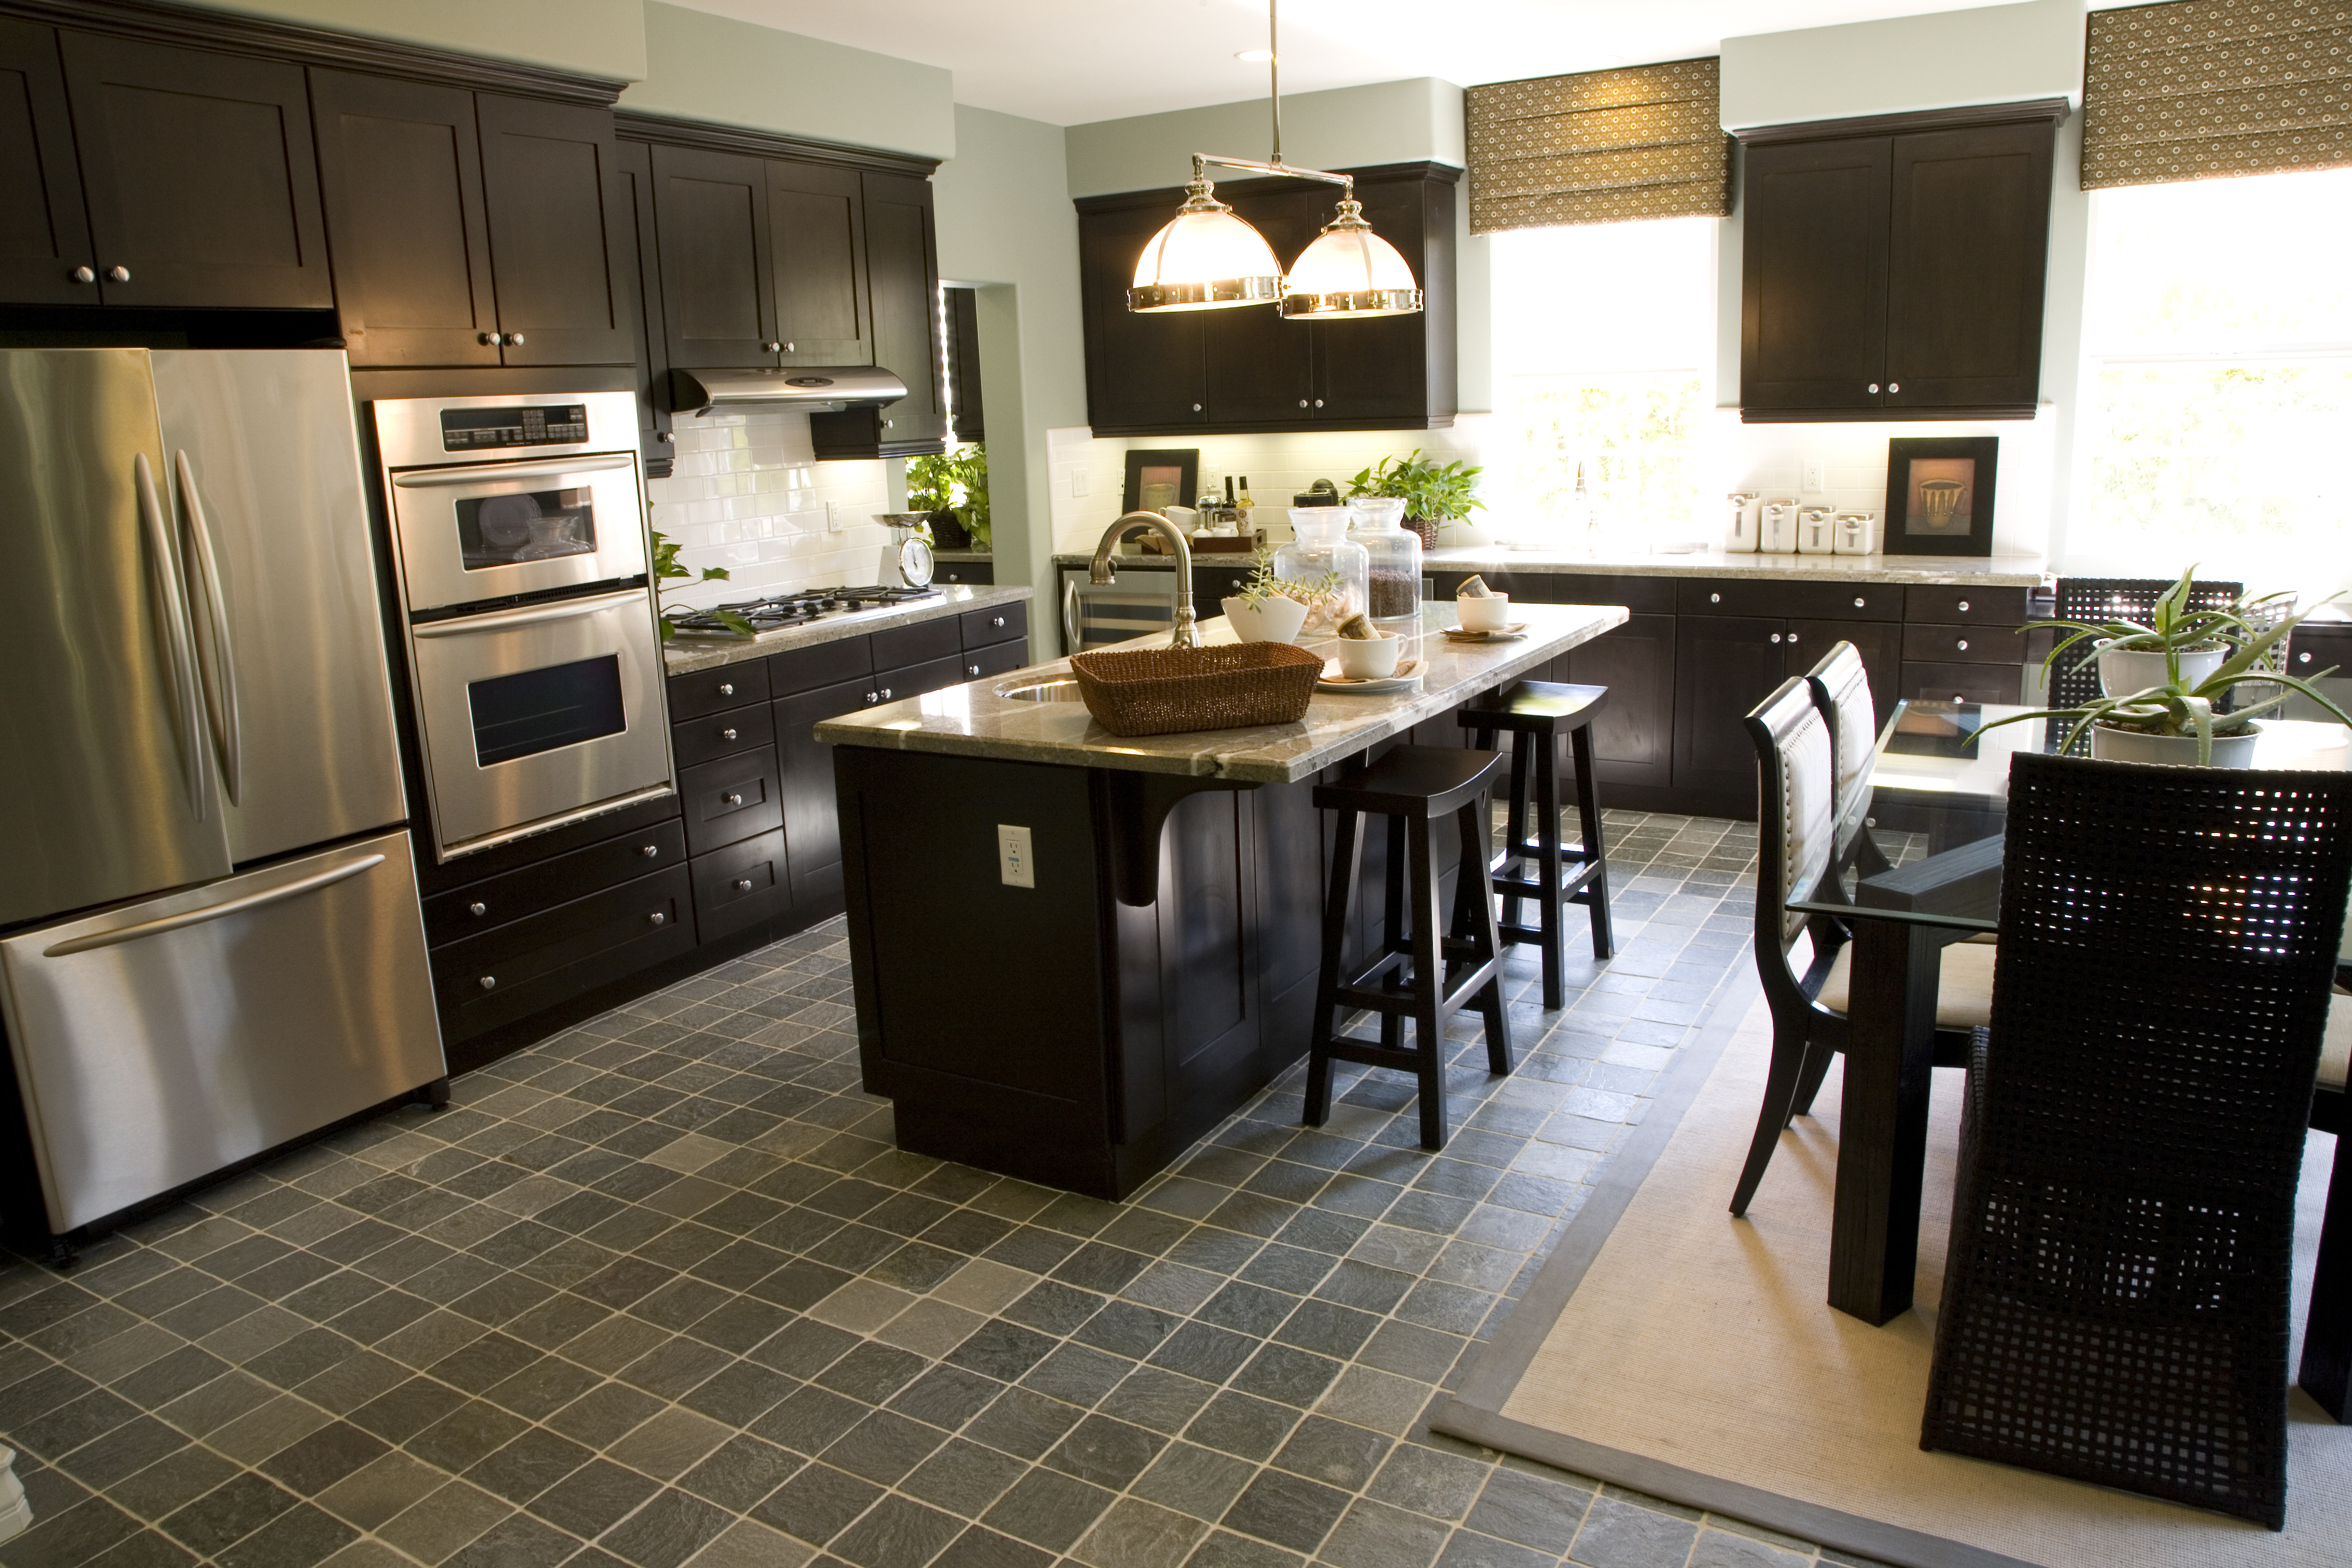 pros and cons of using stainless steel in kitchen design. Black Bedroom Furniture Sets. Home Design Ideas